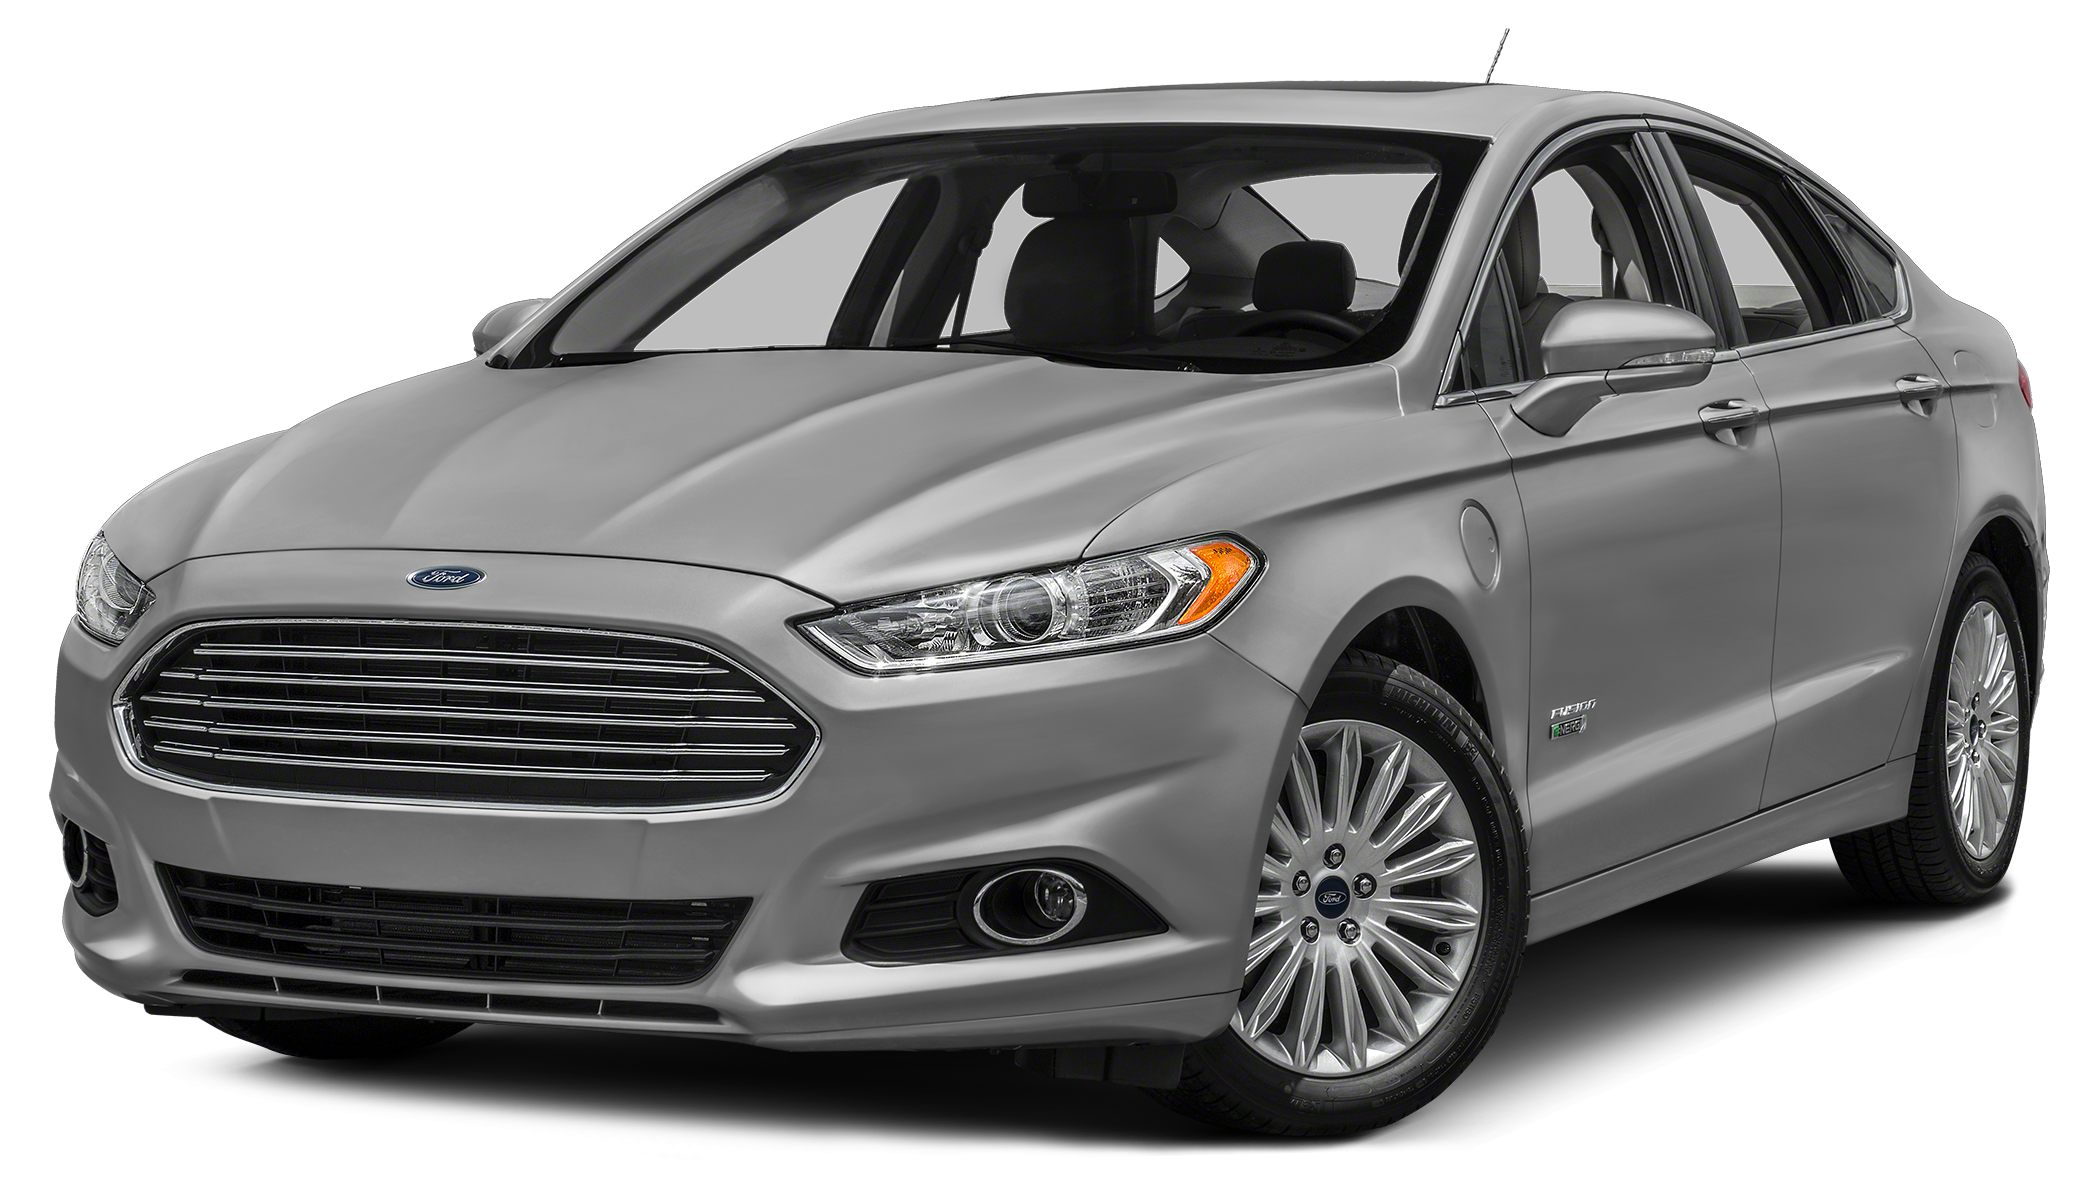 2016 Ford Fusion Energi SE Luxury The 2016 Ford Fusion Energi models have an upscale style and fro